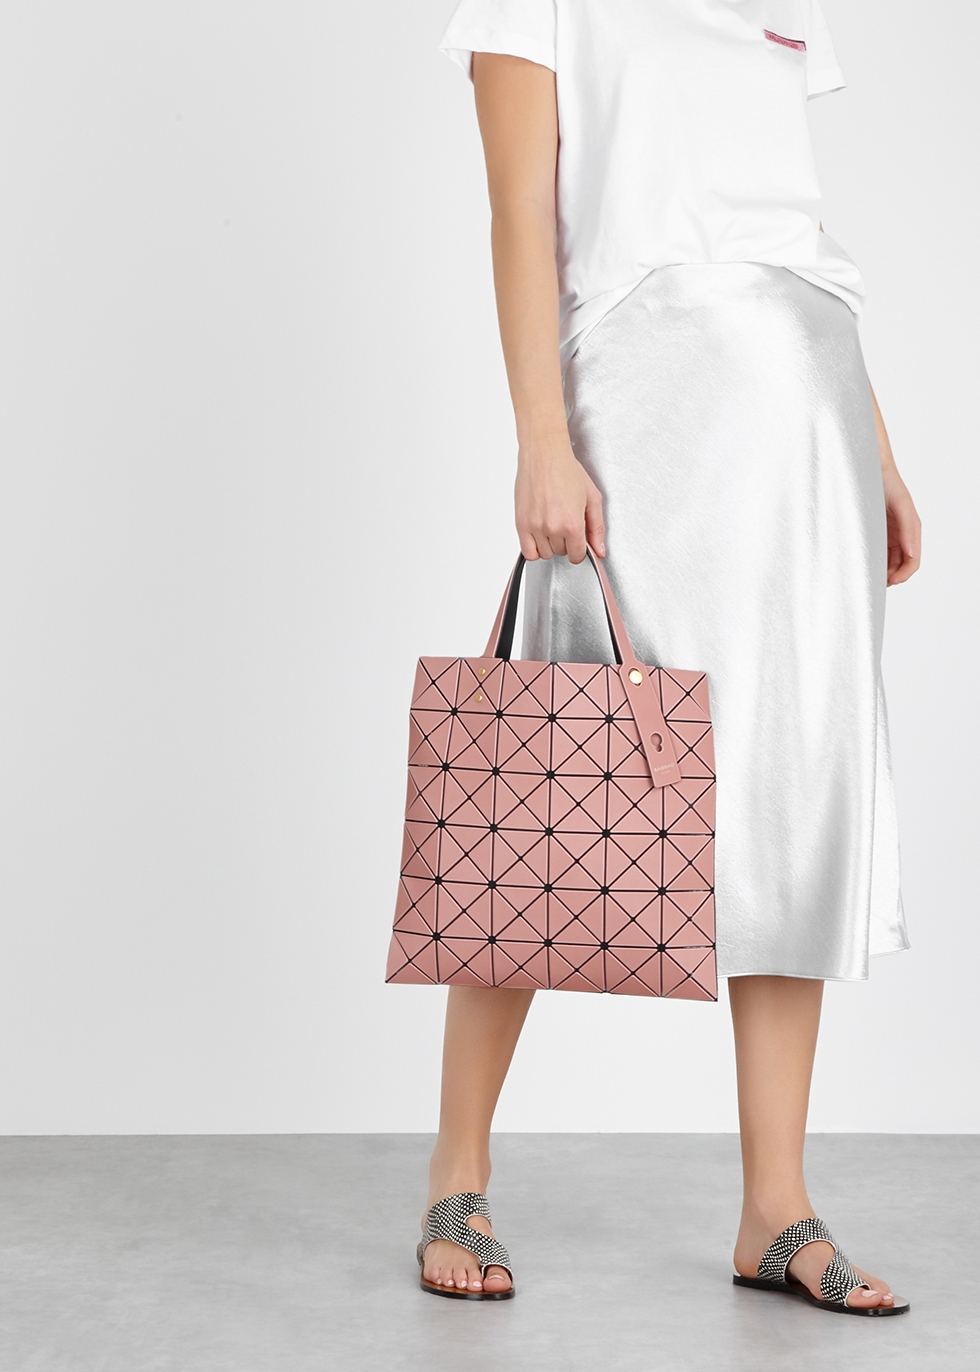 BAO BAO ISSEY MIYAKE Lucent Frost pink tote - Harvey Nichols f32d50abf2f38